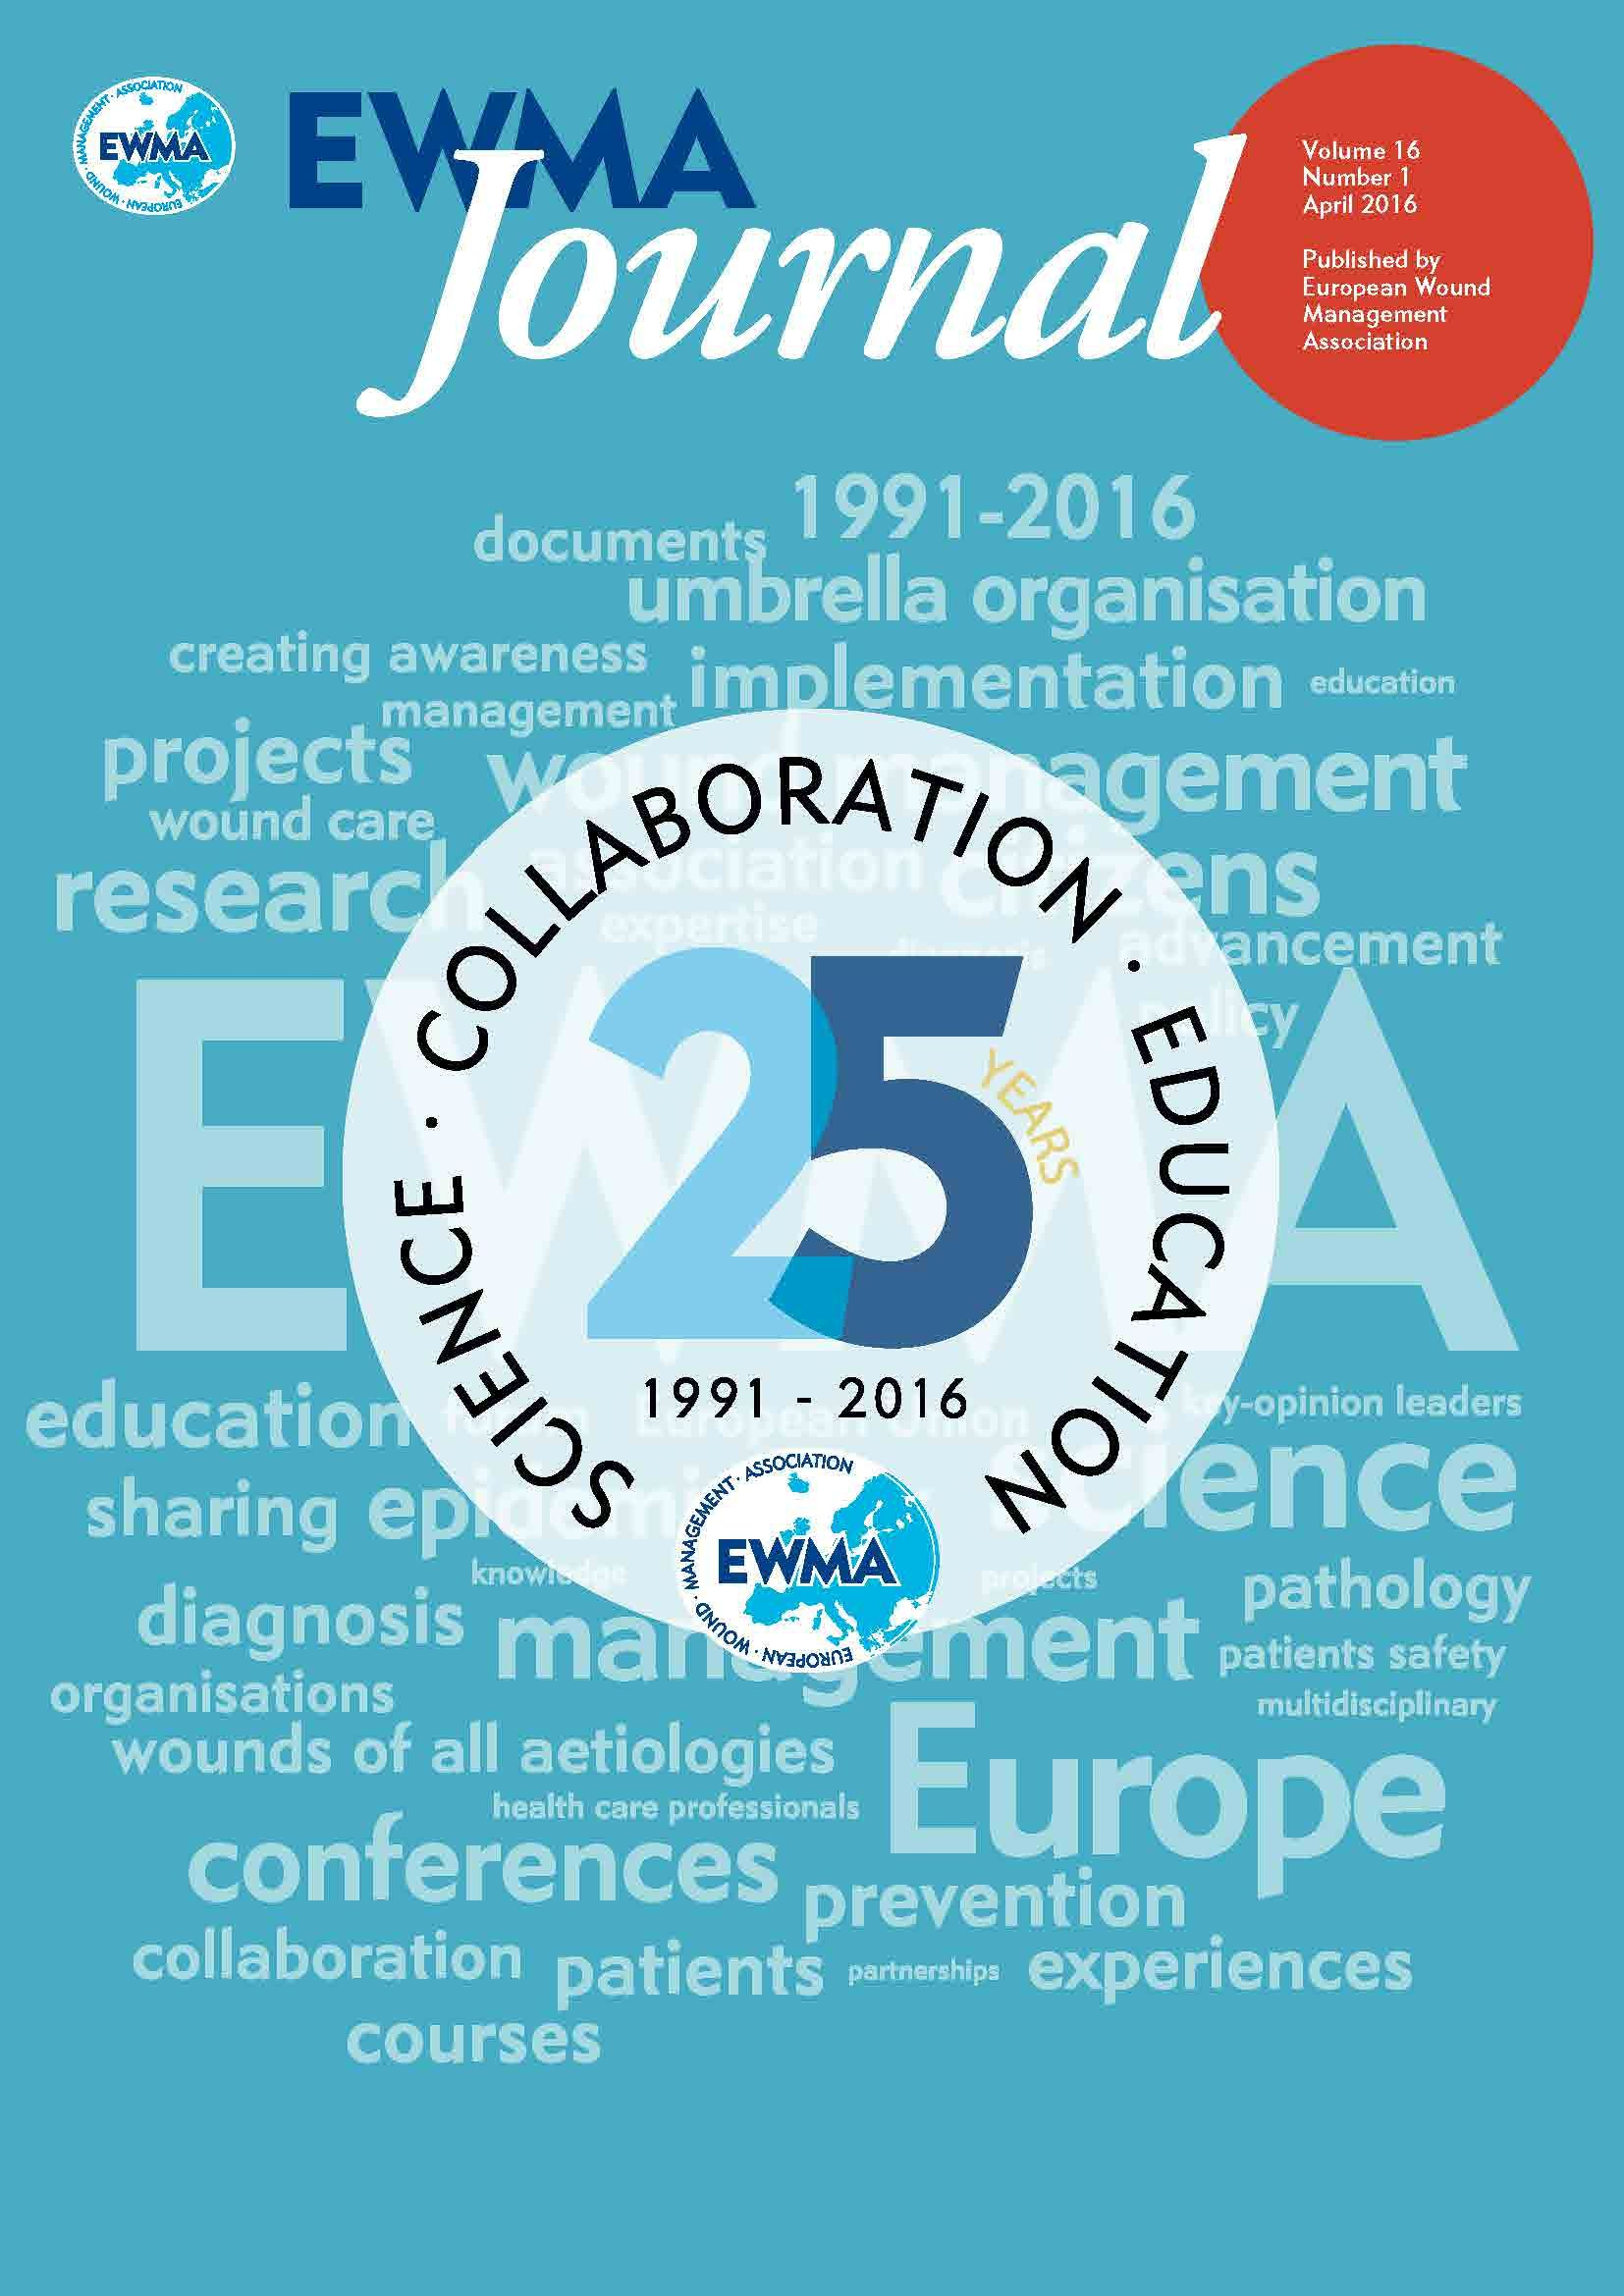 COVER_EWMA_Journal_April_2016.jpg